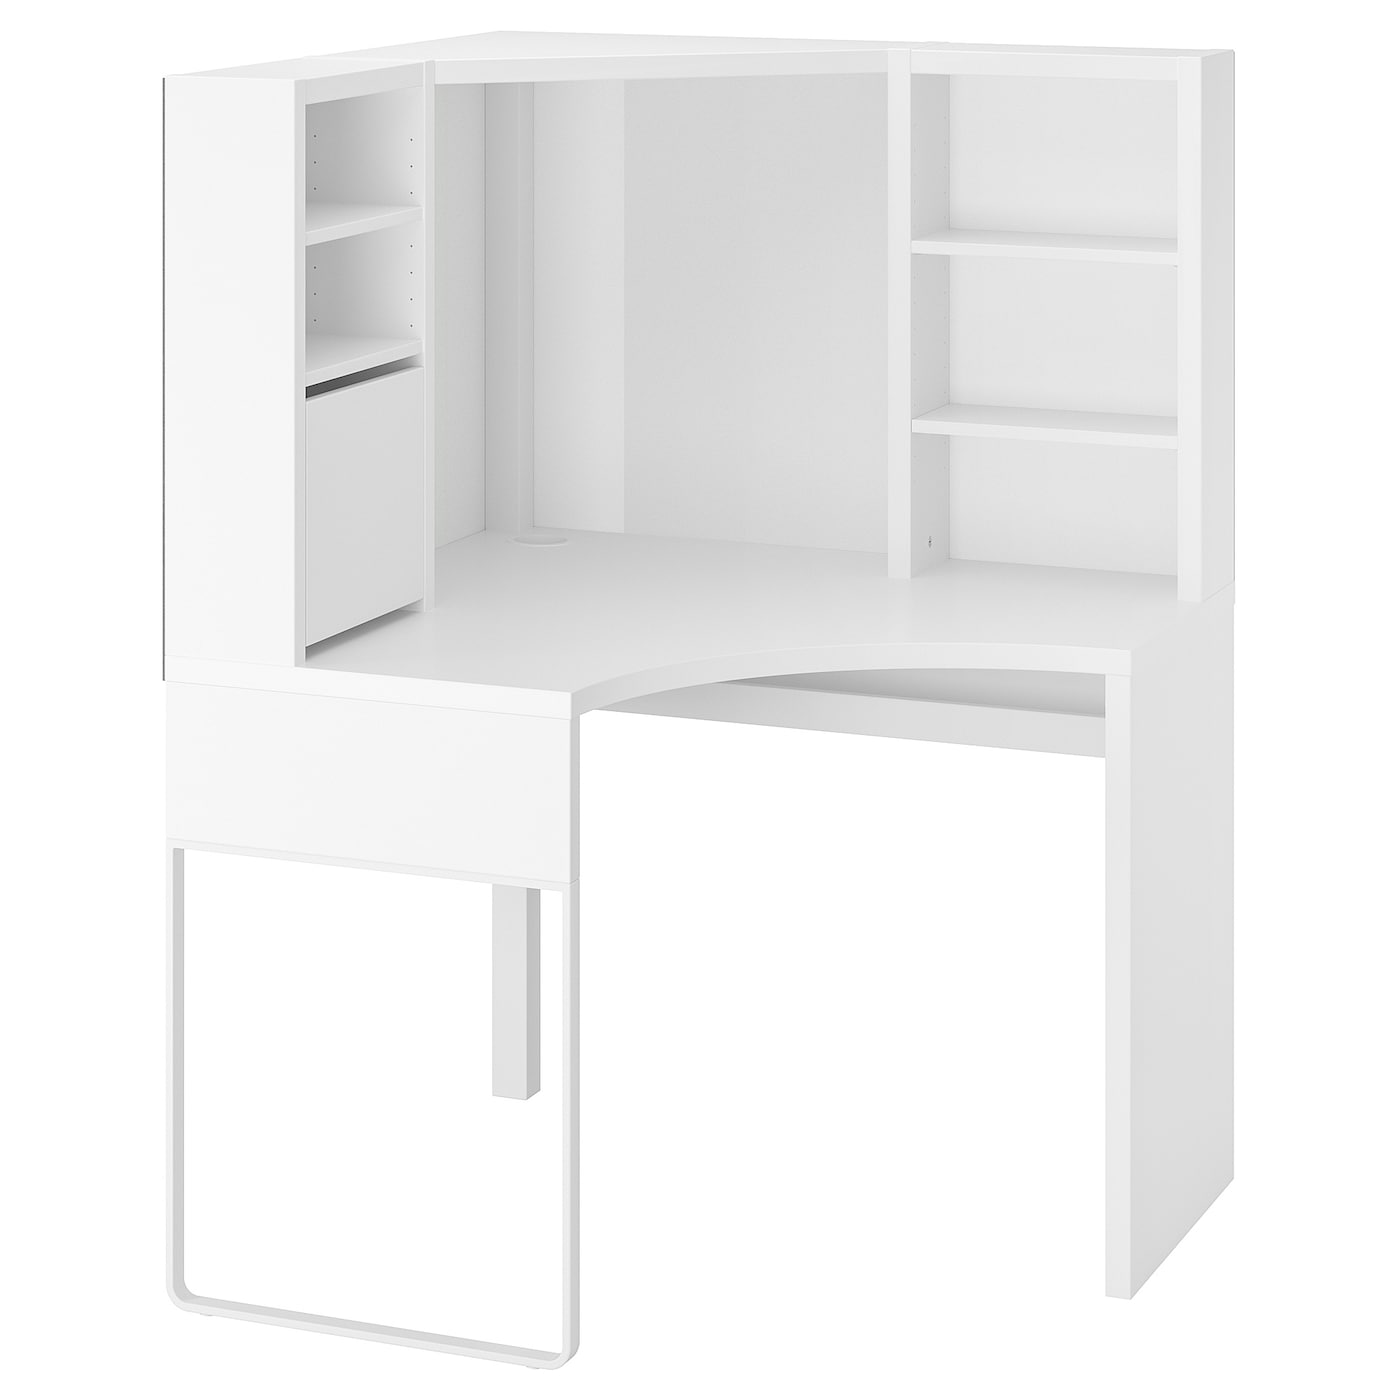 MICKE Corner workstation - white 46 46/46x46 46/46 ""